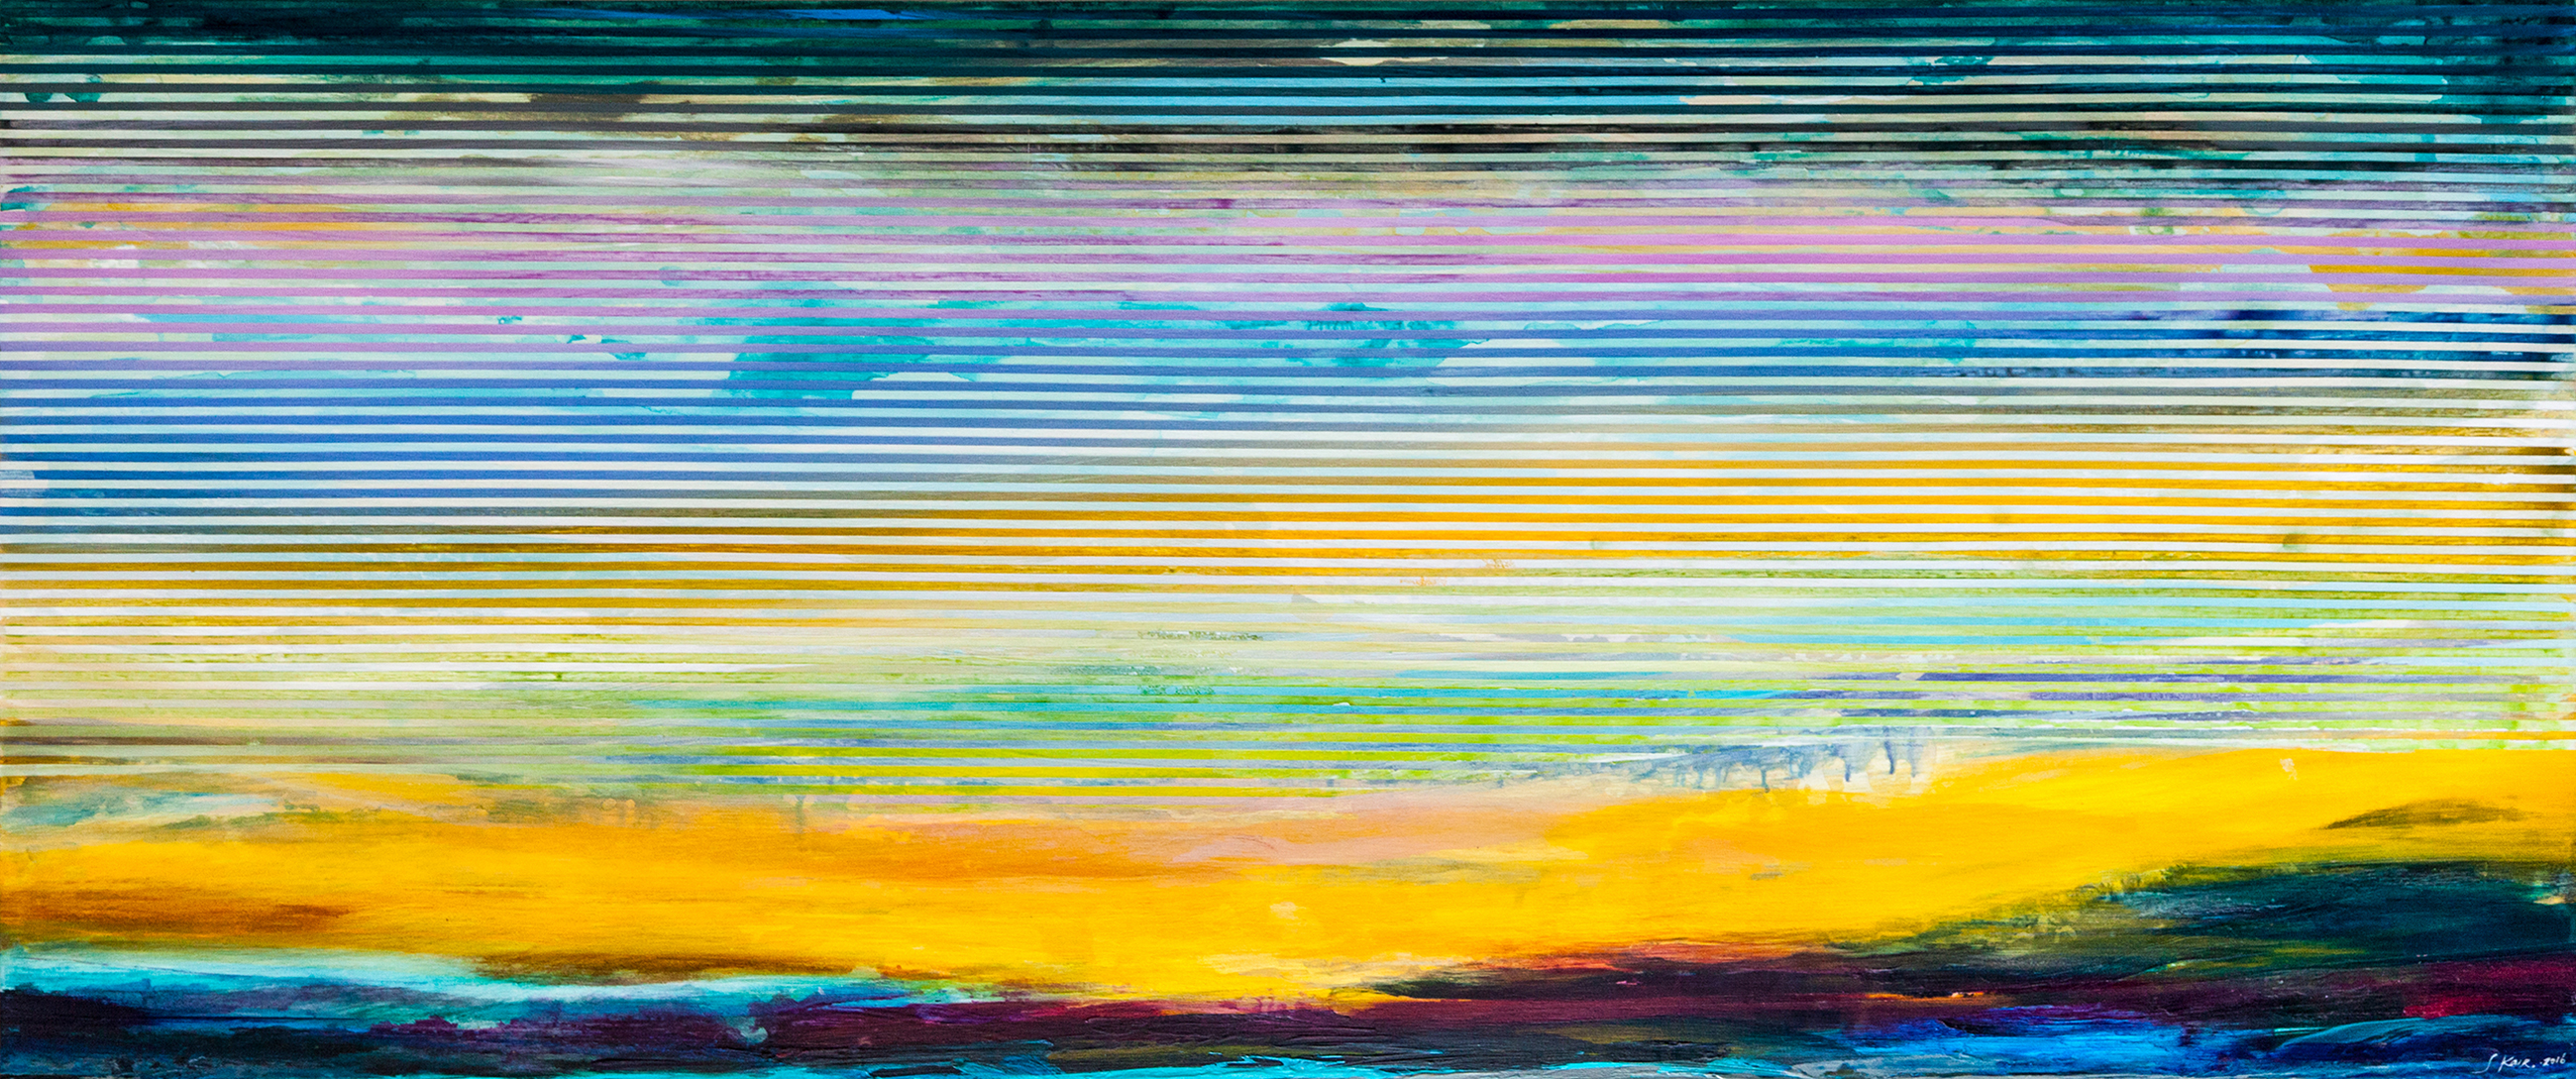 Weaving Landscape No.43_72 x 30 inches_at Beauchamp as of July 2017